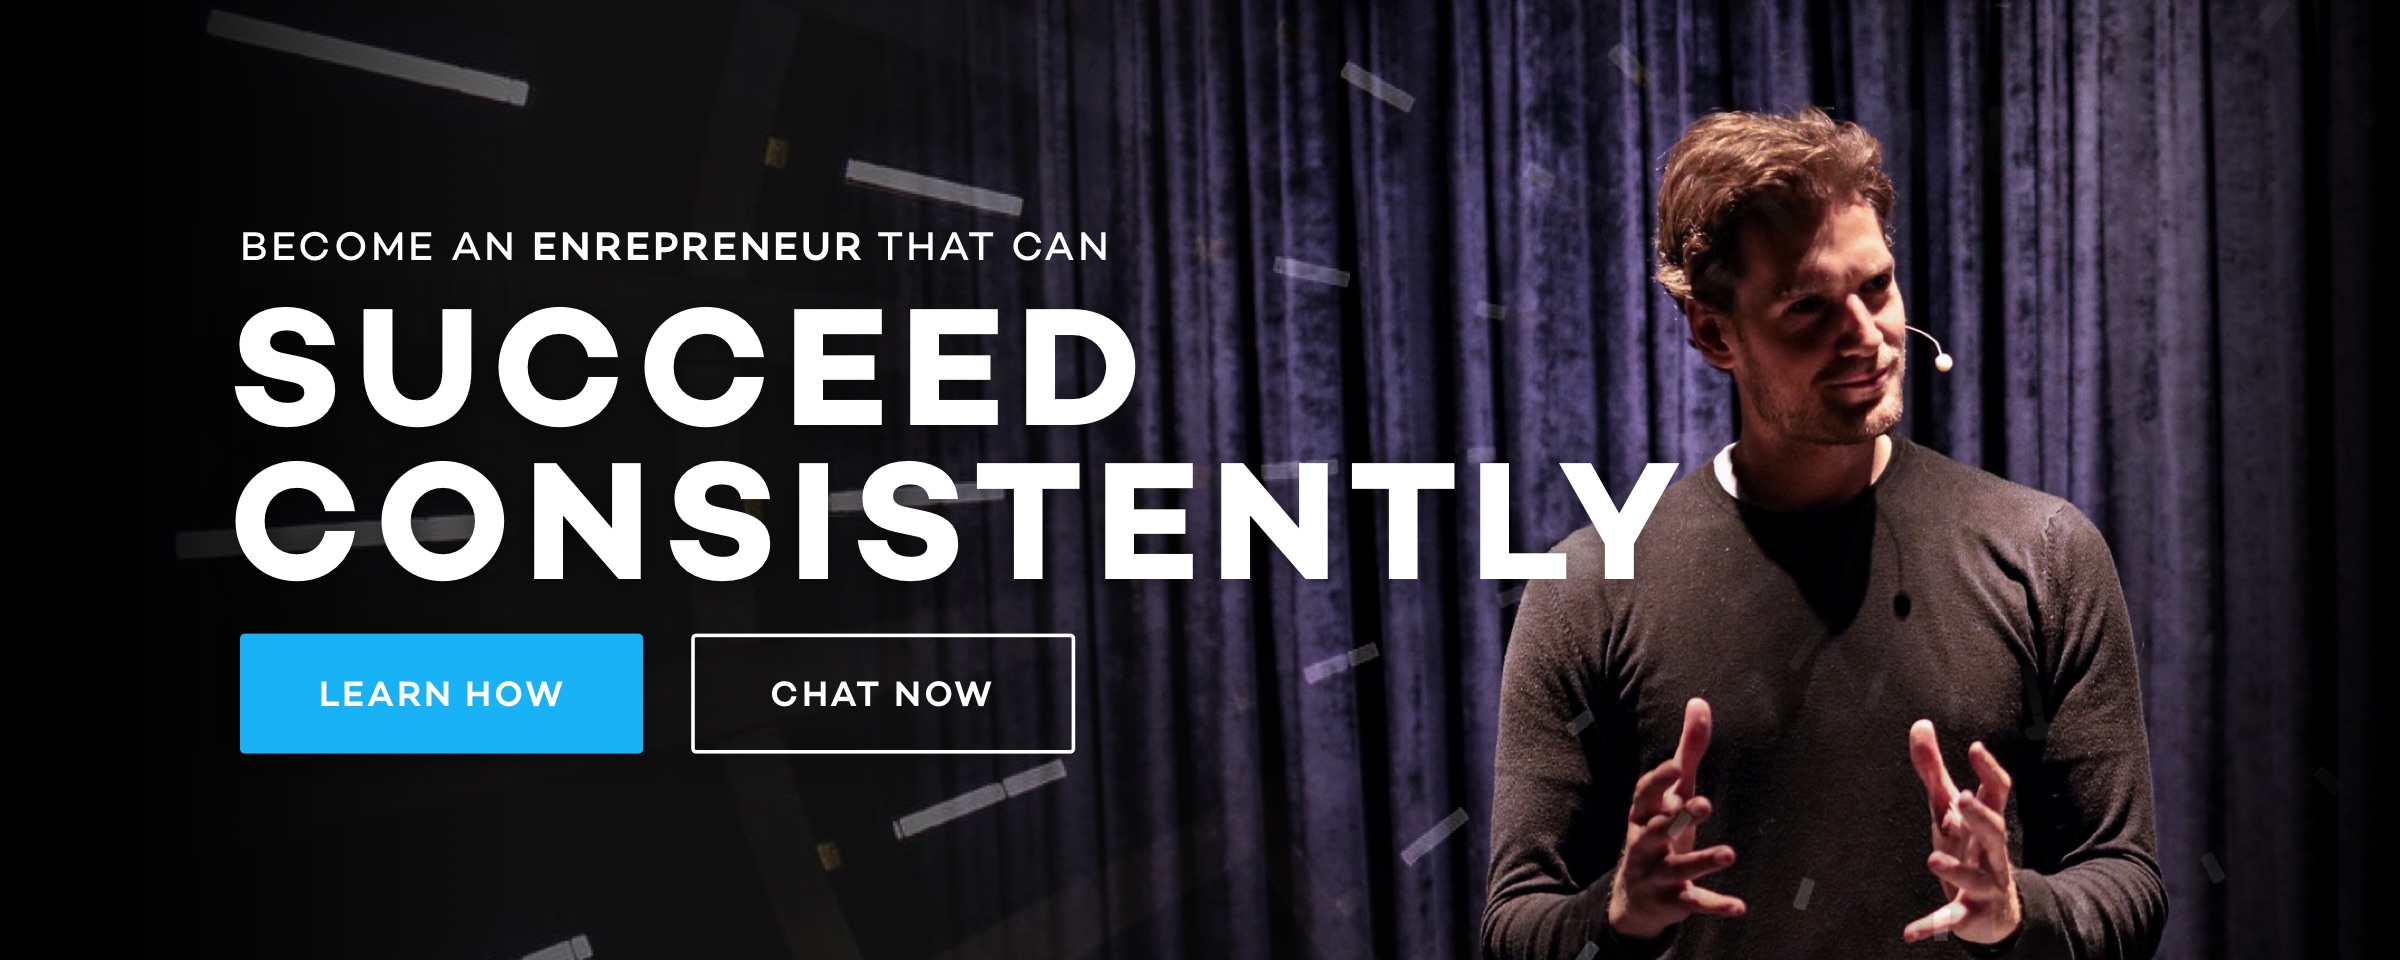 Become an entrepreneur that succeeds consistently